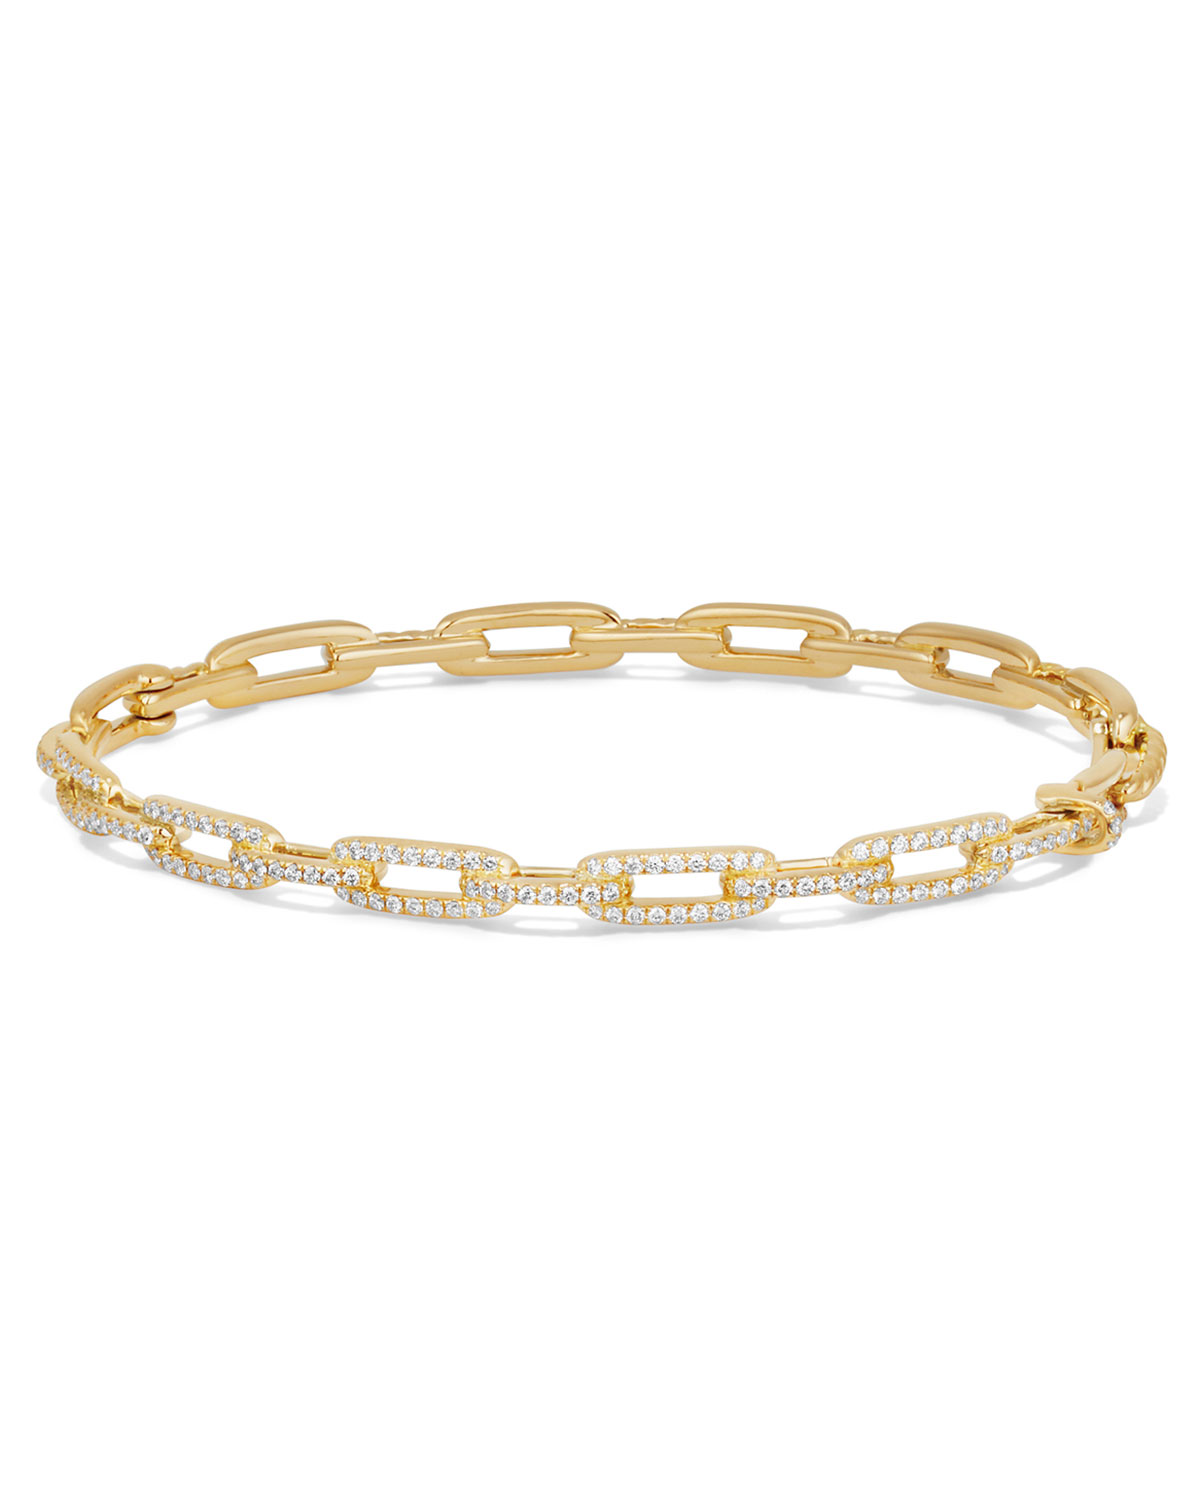 David Yurman Stax Chain Link Bracelet in 18k Yellow Gold w/ Diamonds, Size S